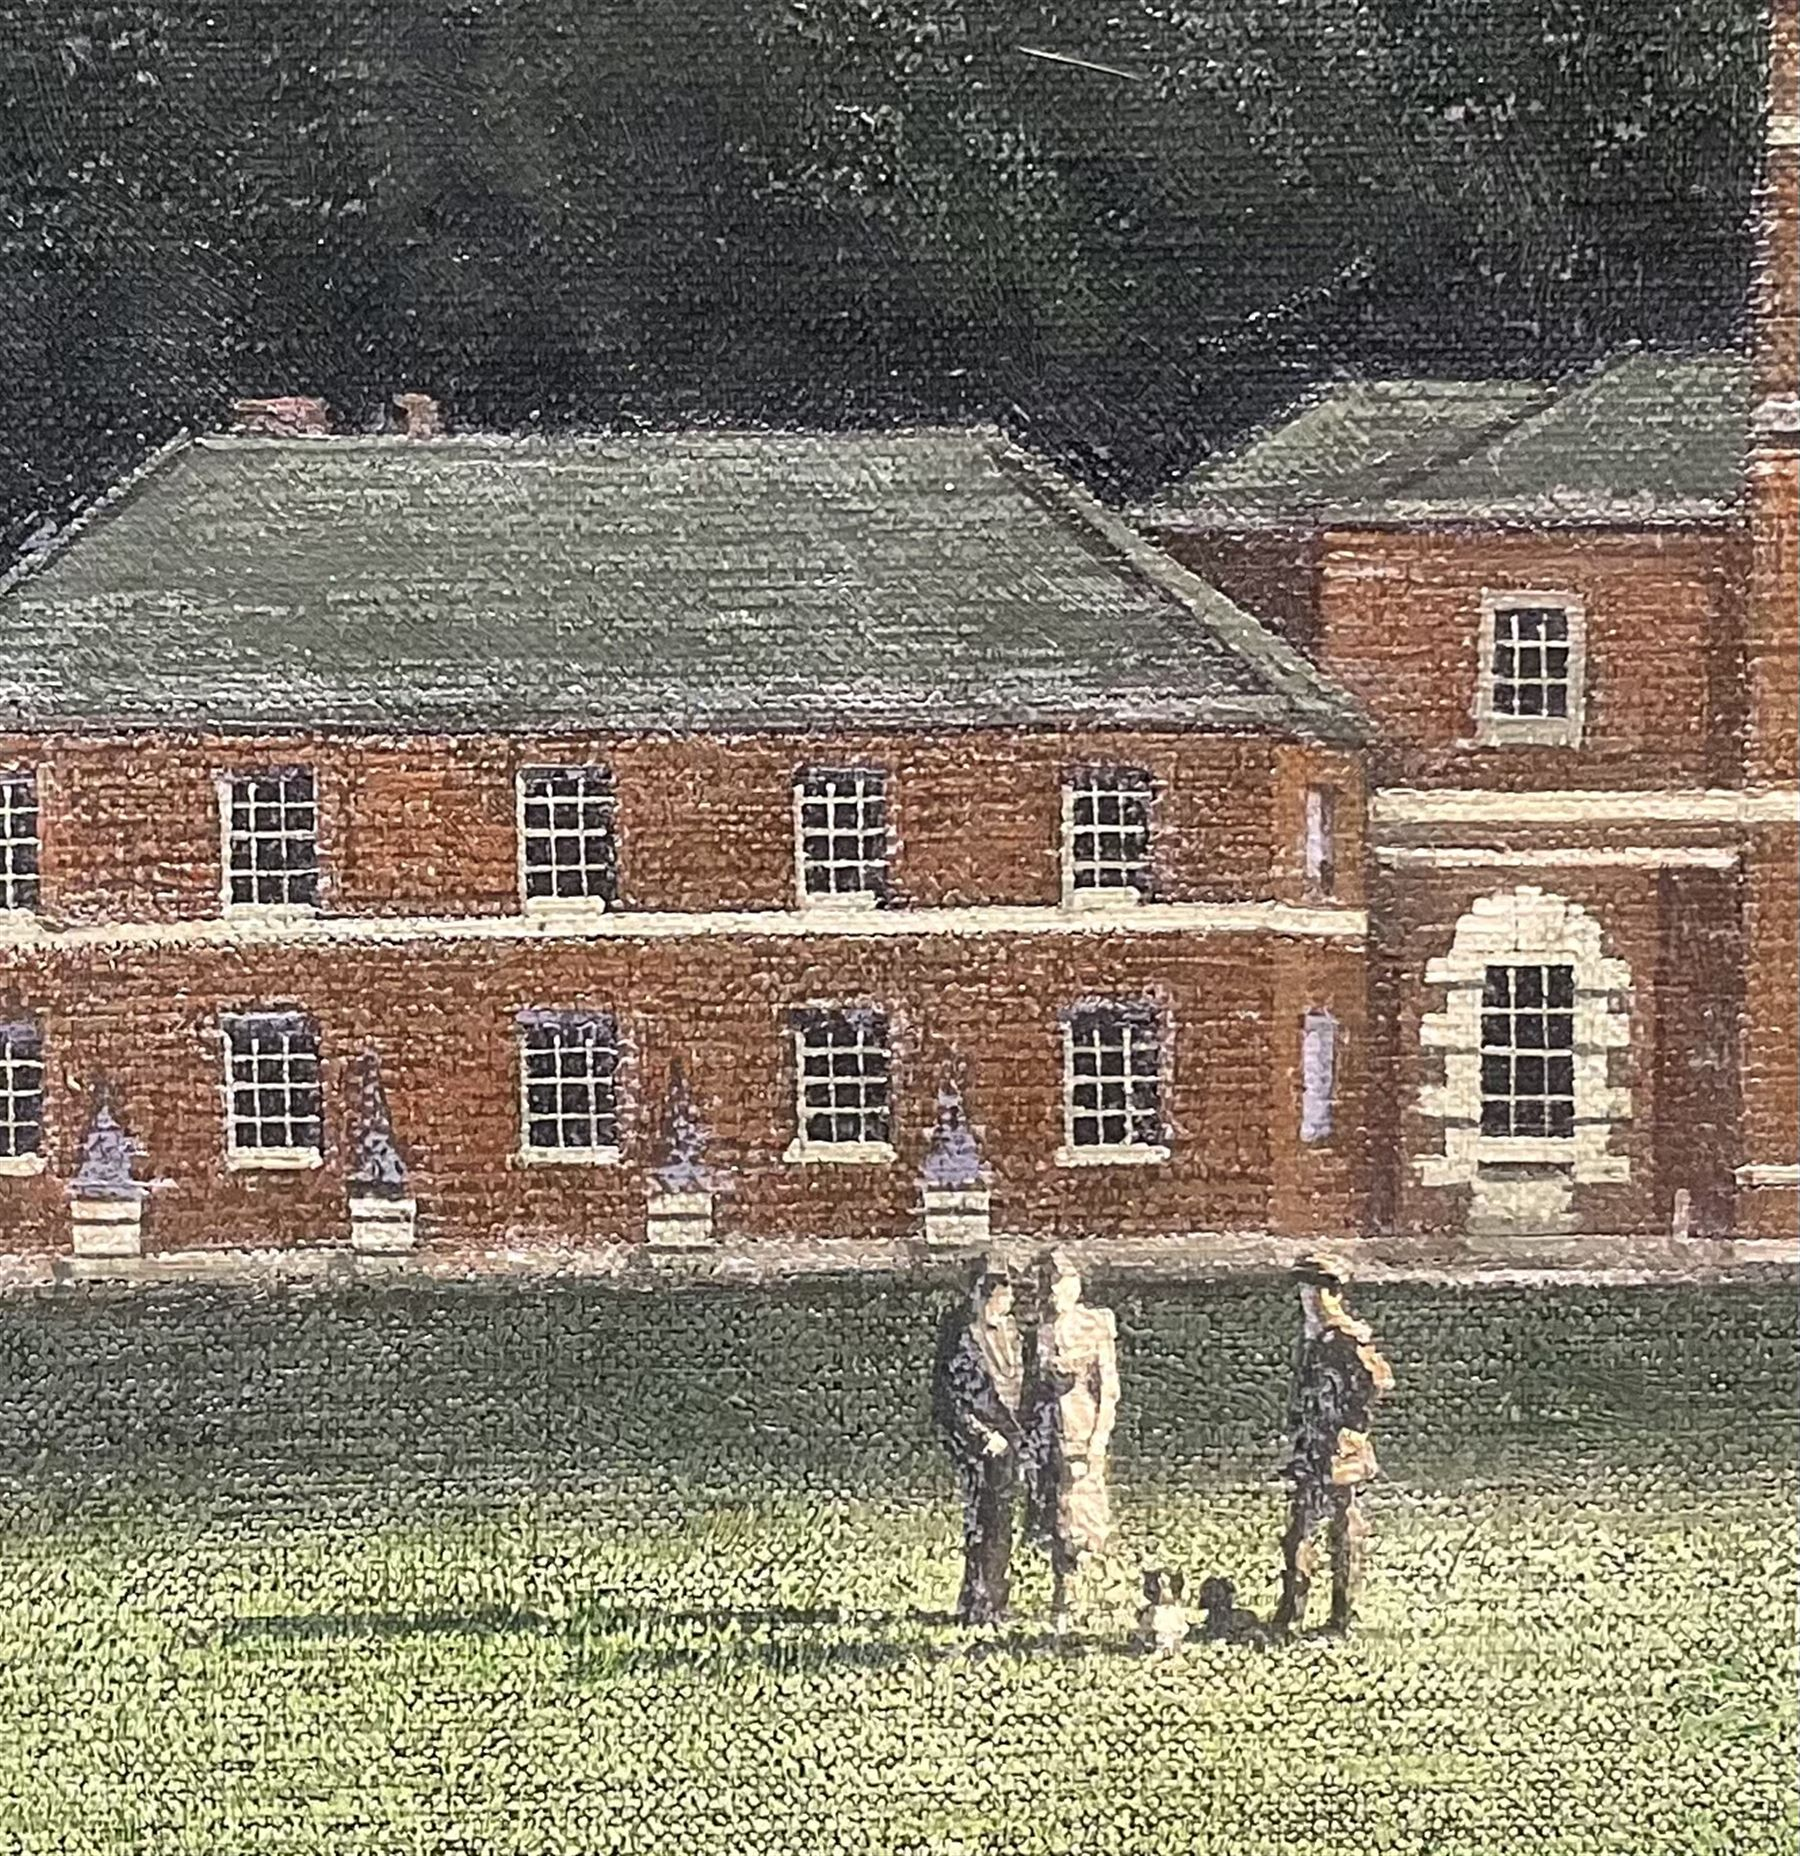 Algernon Cecil Newton RA (British 1880-1968): 'A View of Godmersham Park Kent on a Cloudy Day' - Image 4 of 12